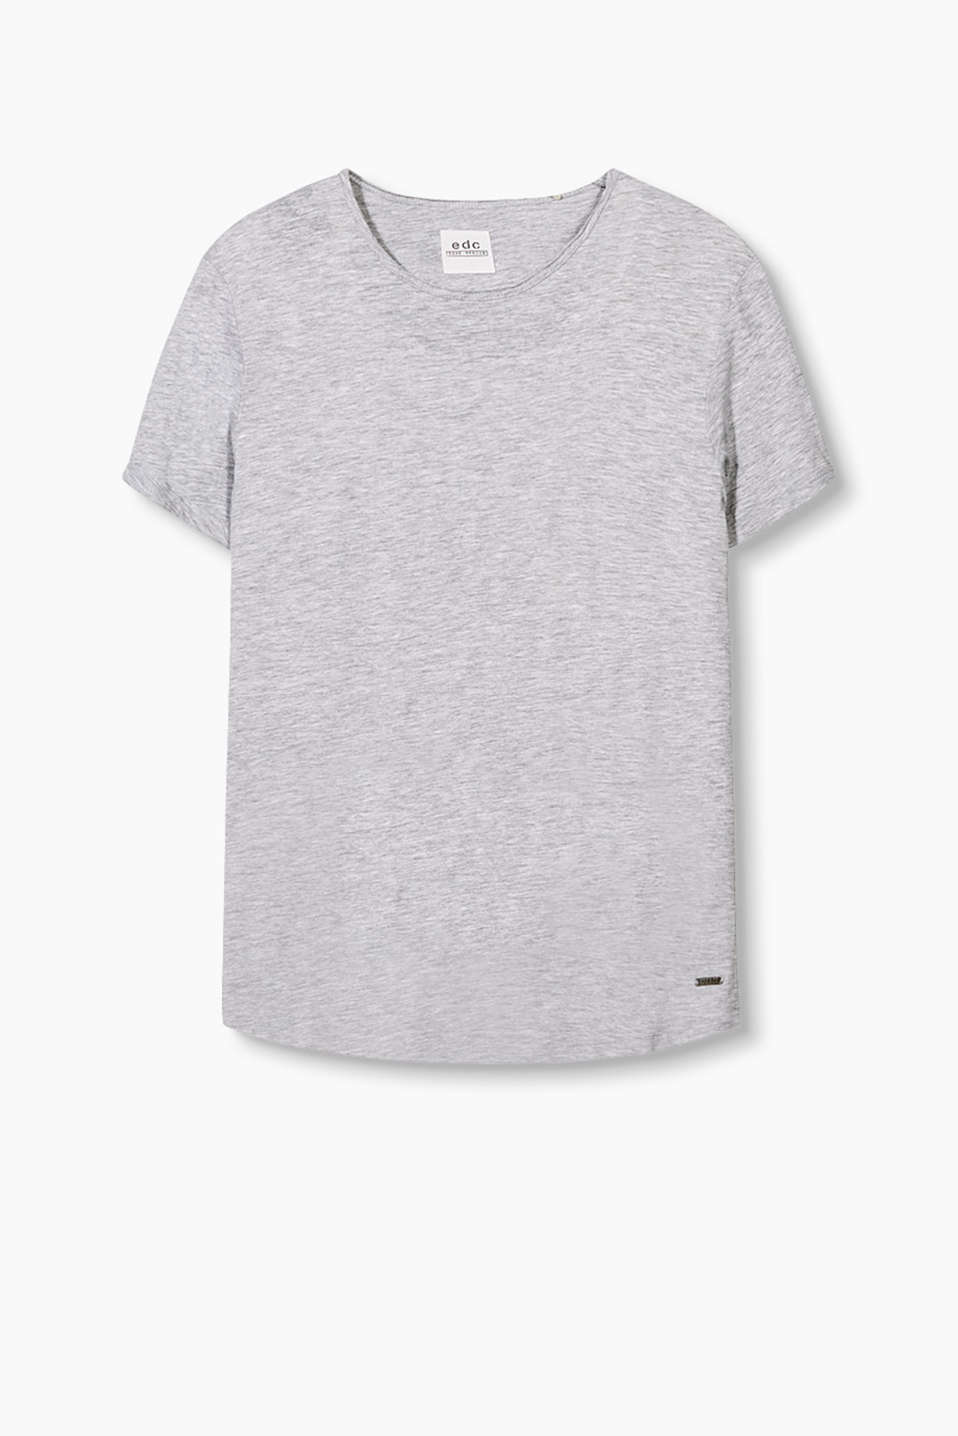 Your urban fashion basic: T-shirt in a trendy long cut made of soft cotton jersey